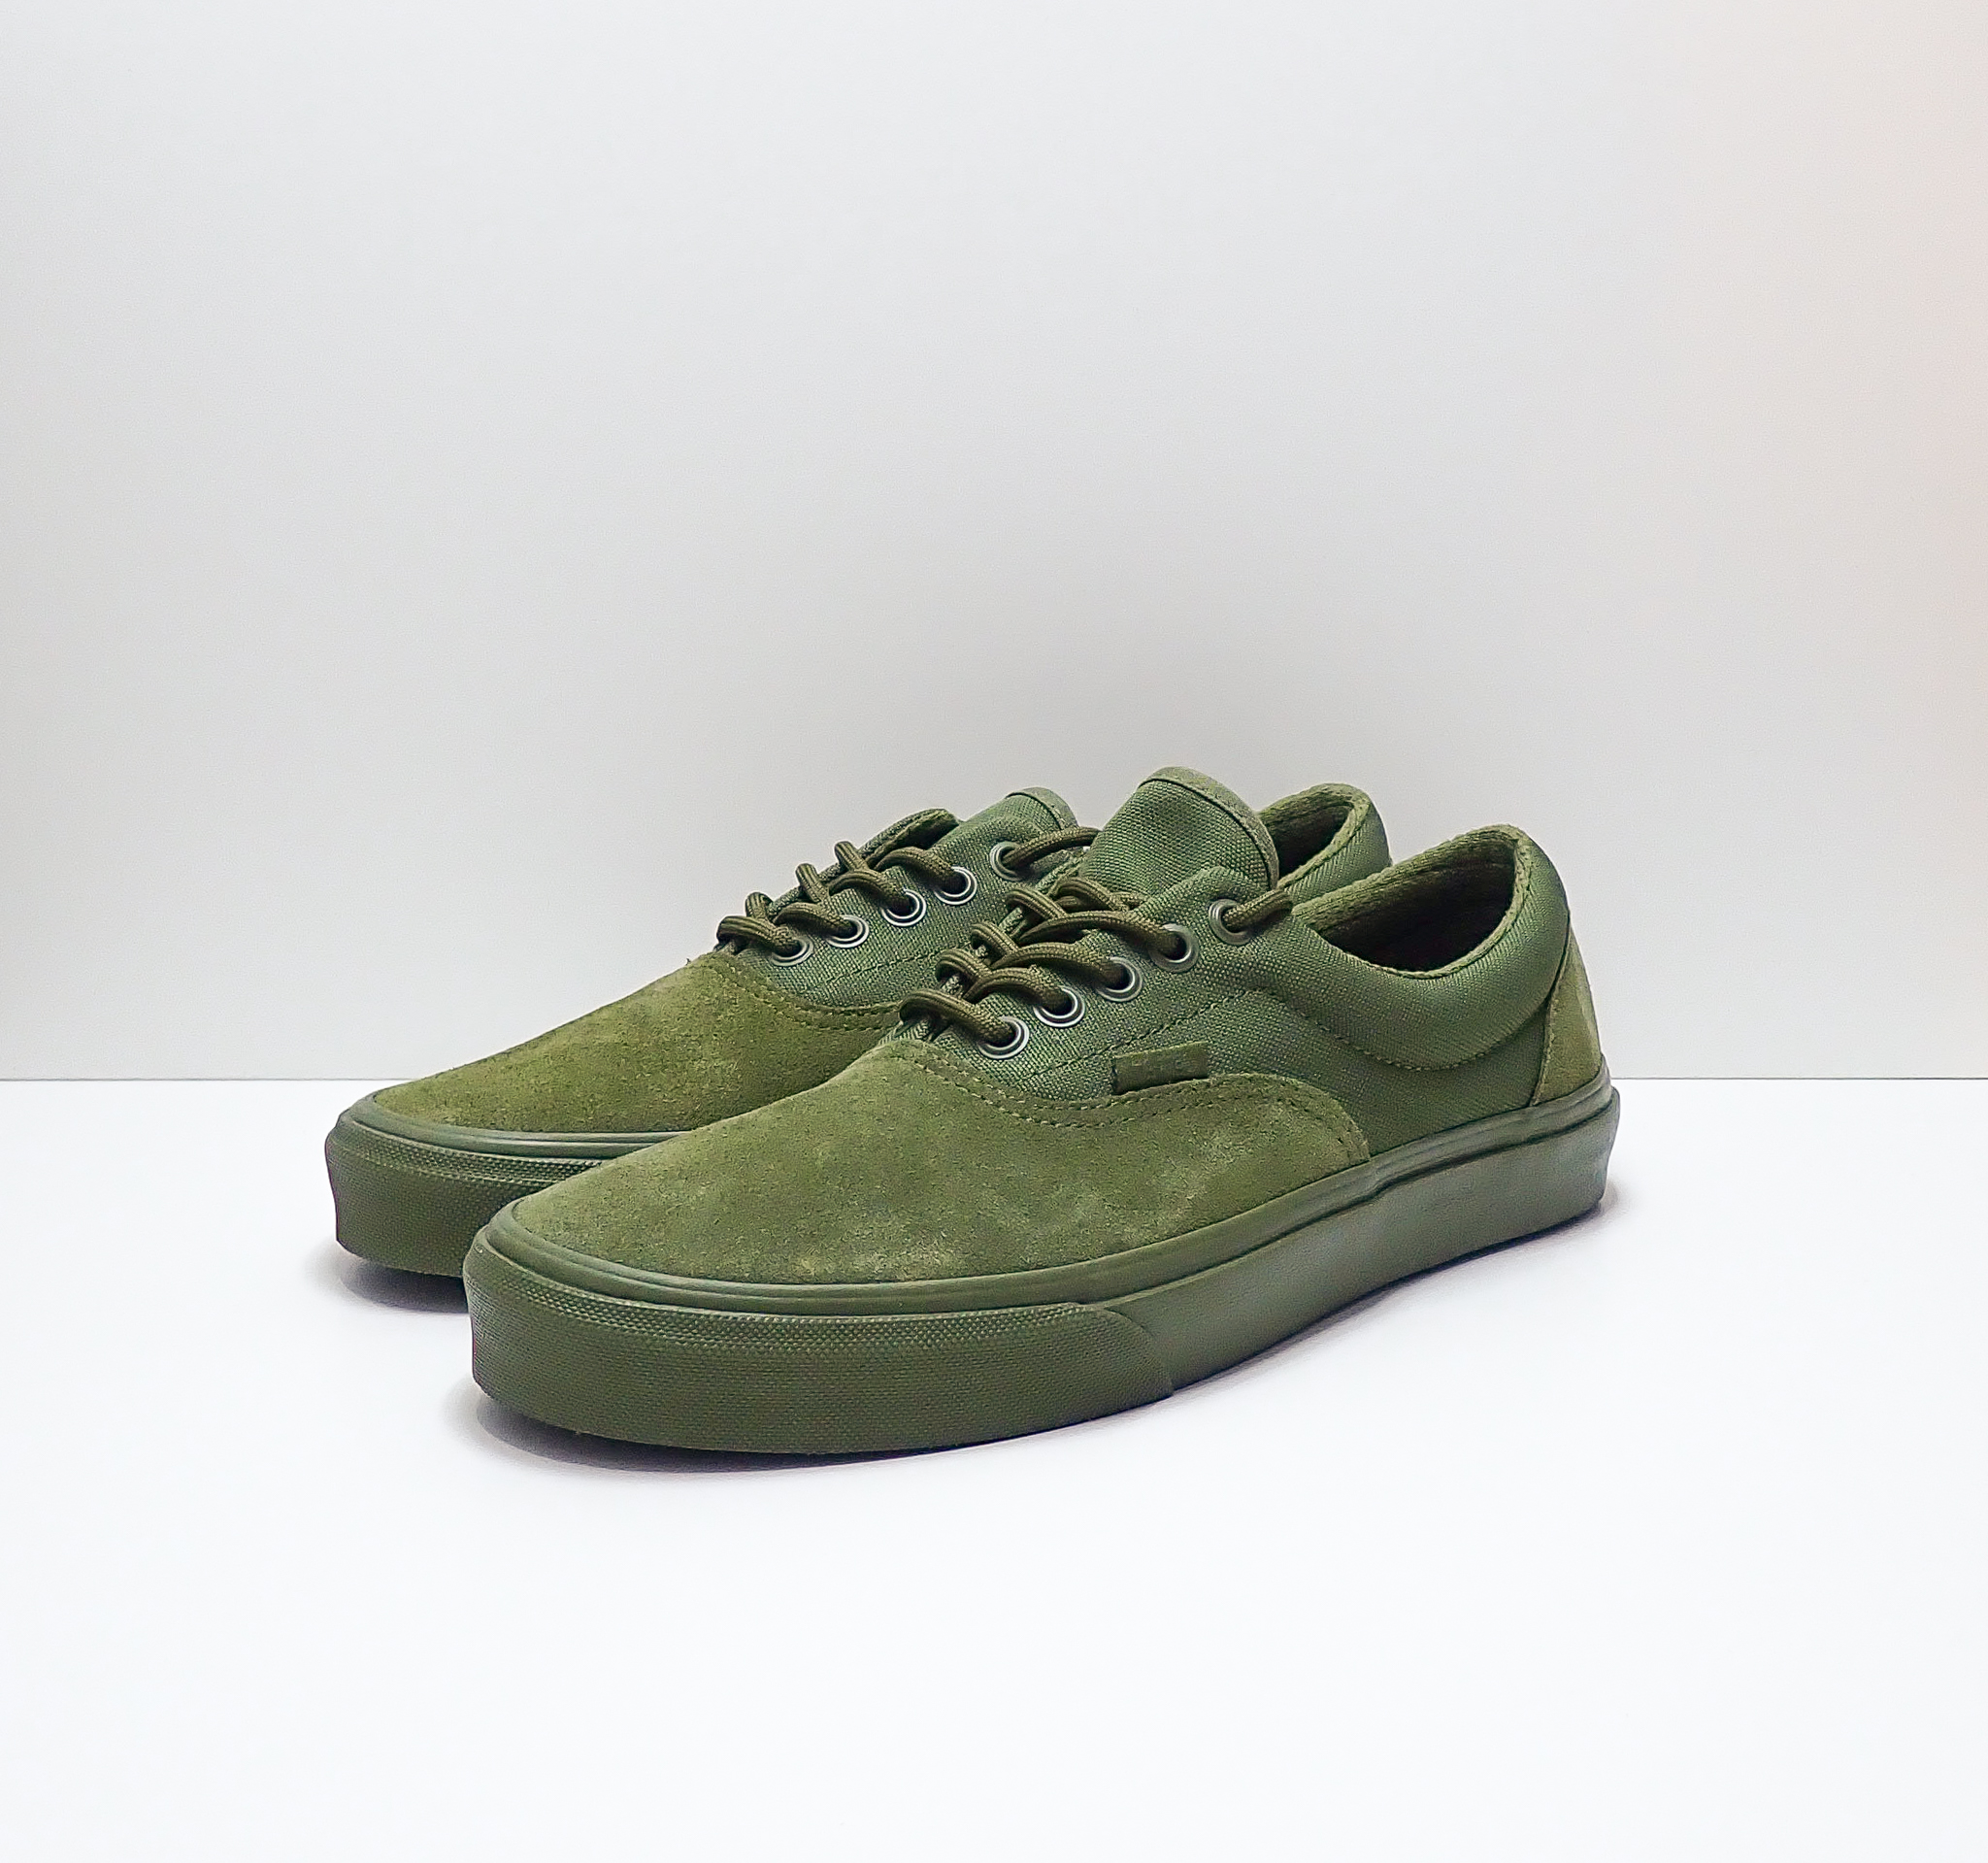 Vans Era Suede Green